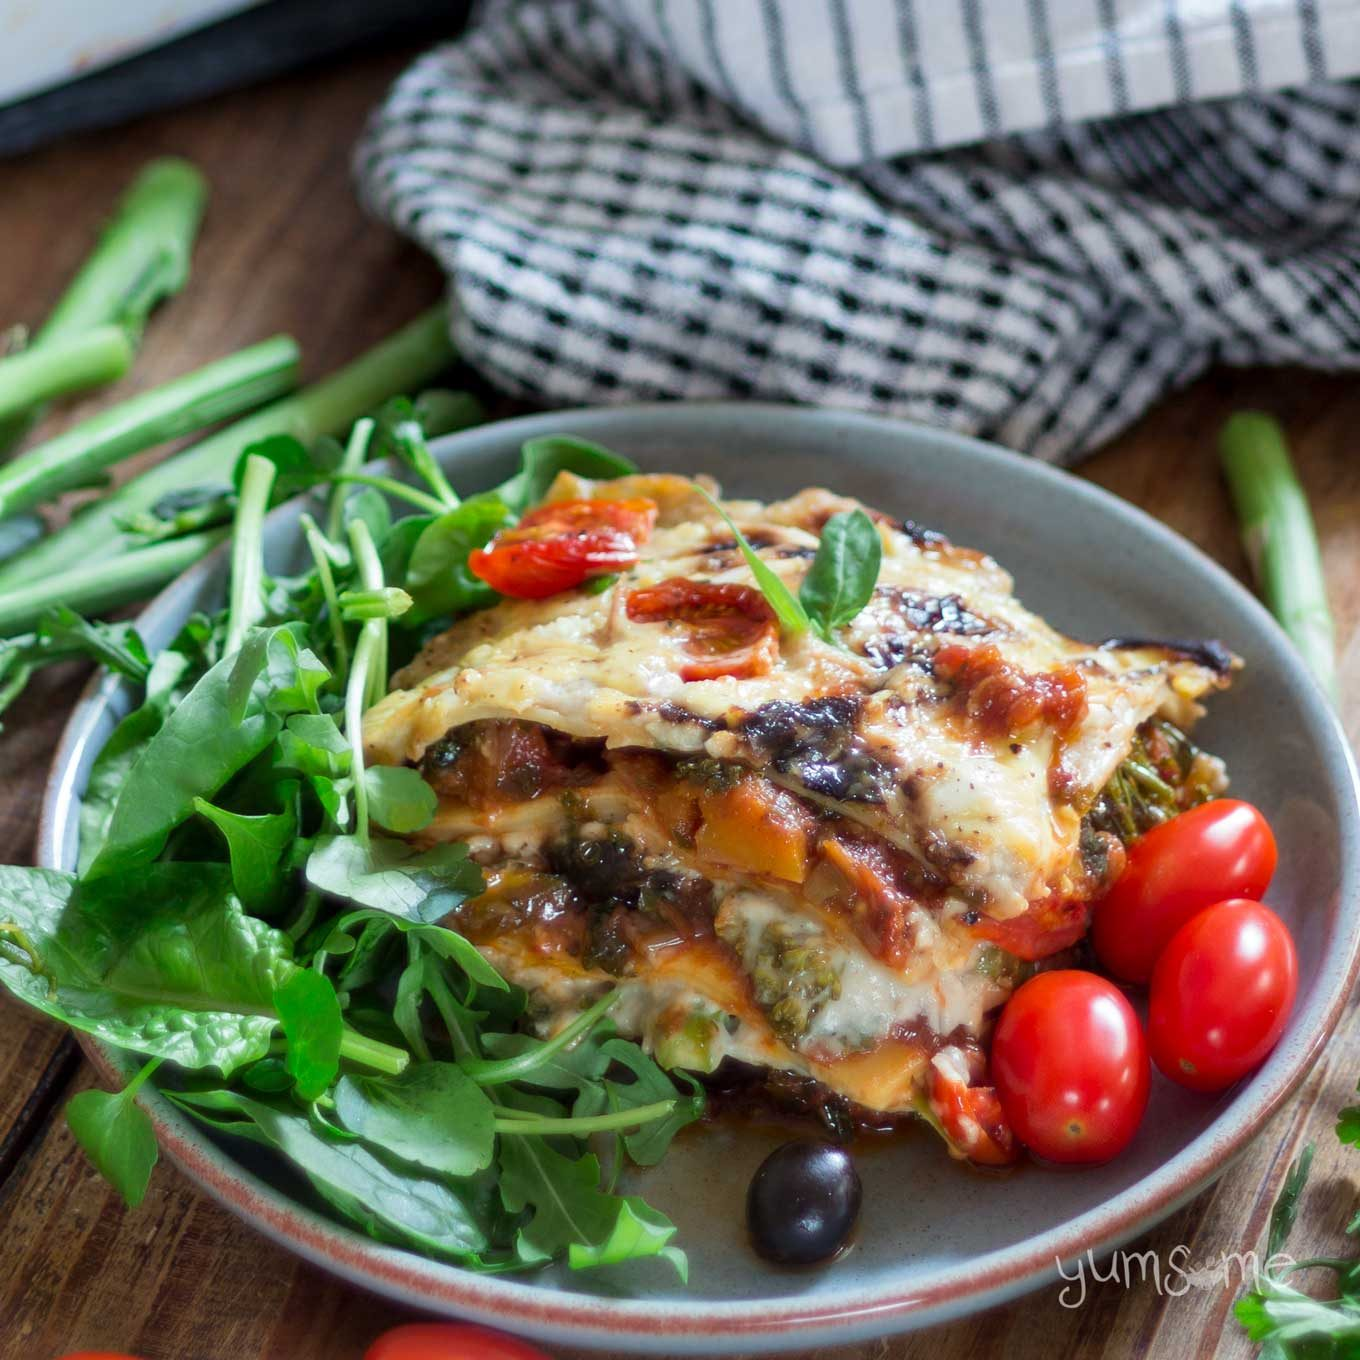 a plate of loaded vegan lasagne, with green salad and tomatoes, plus a tea towel | yumsome.com